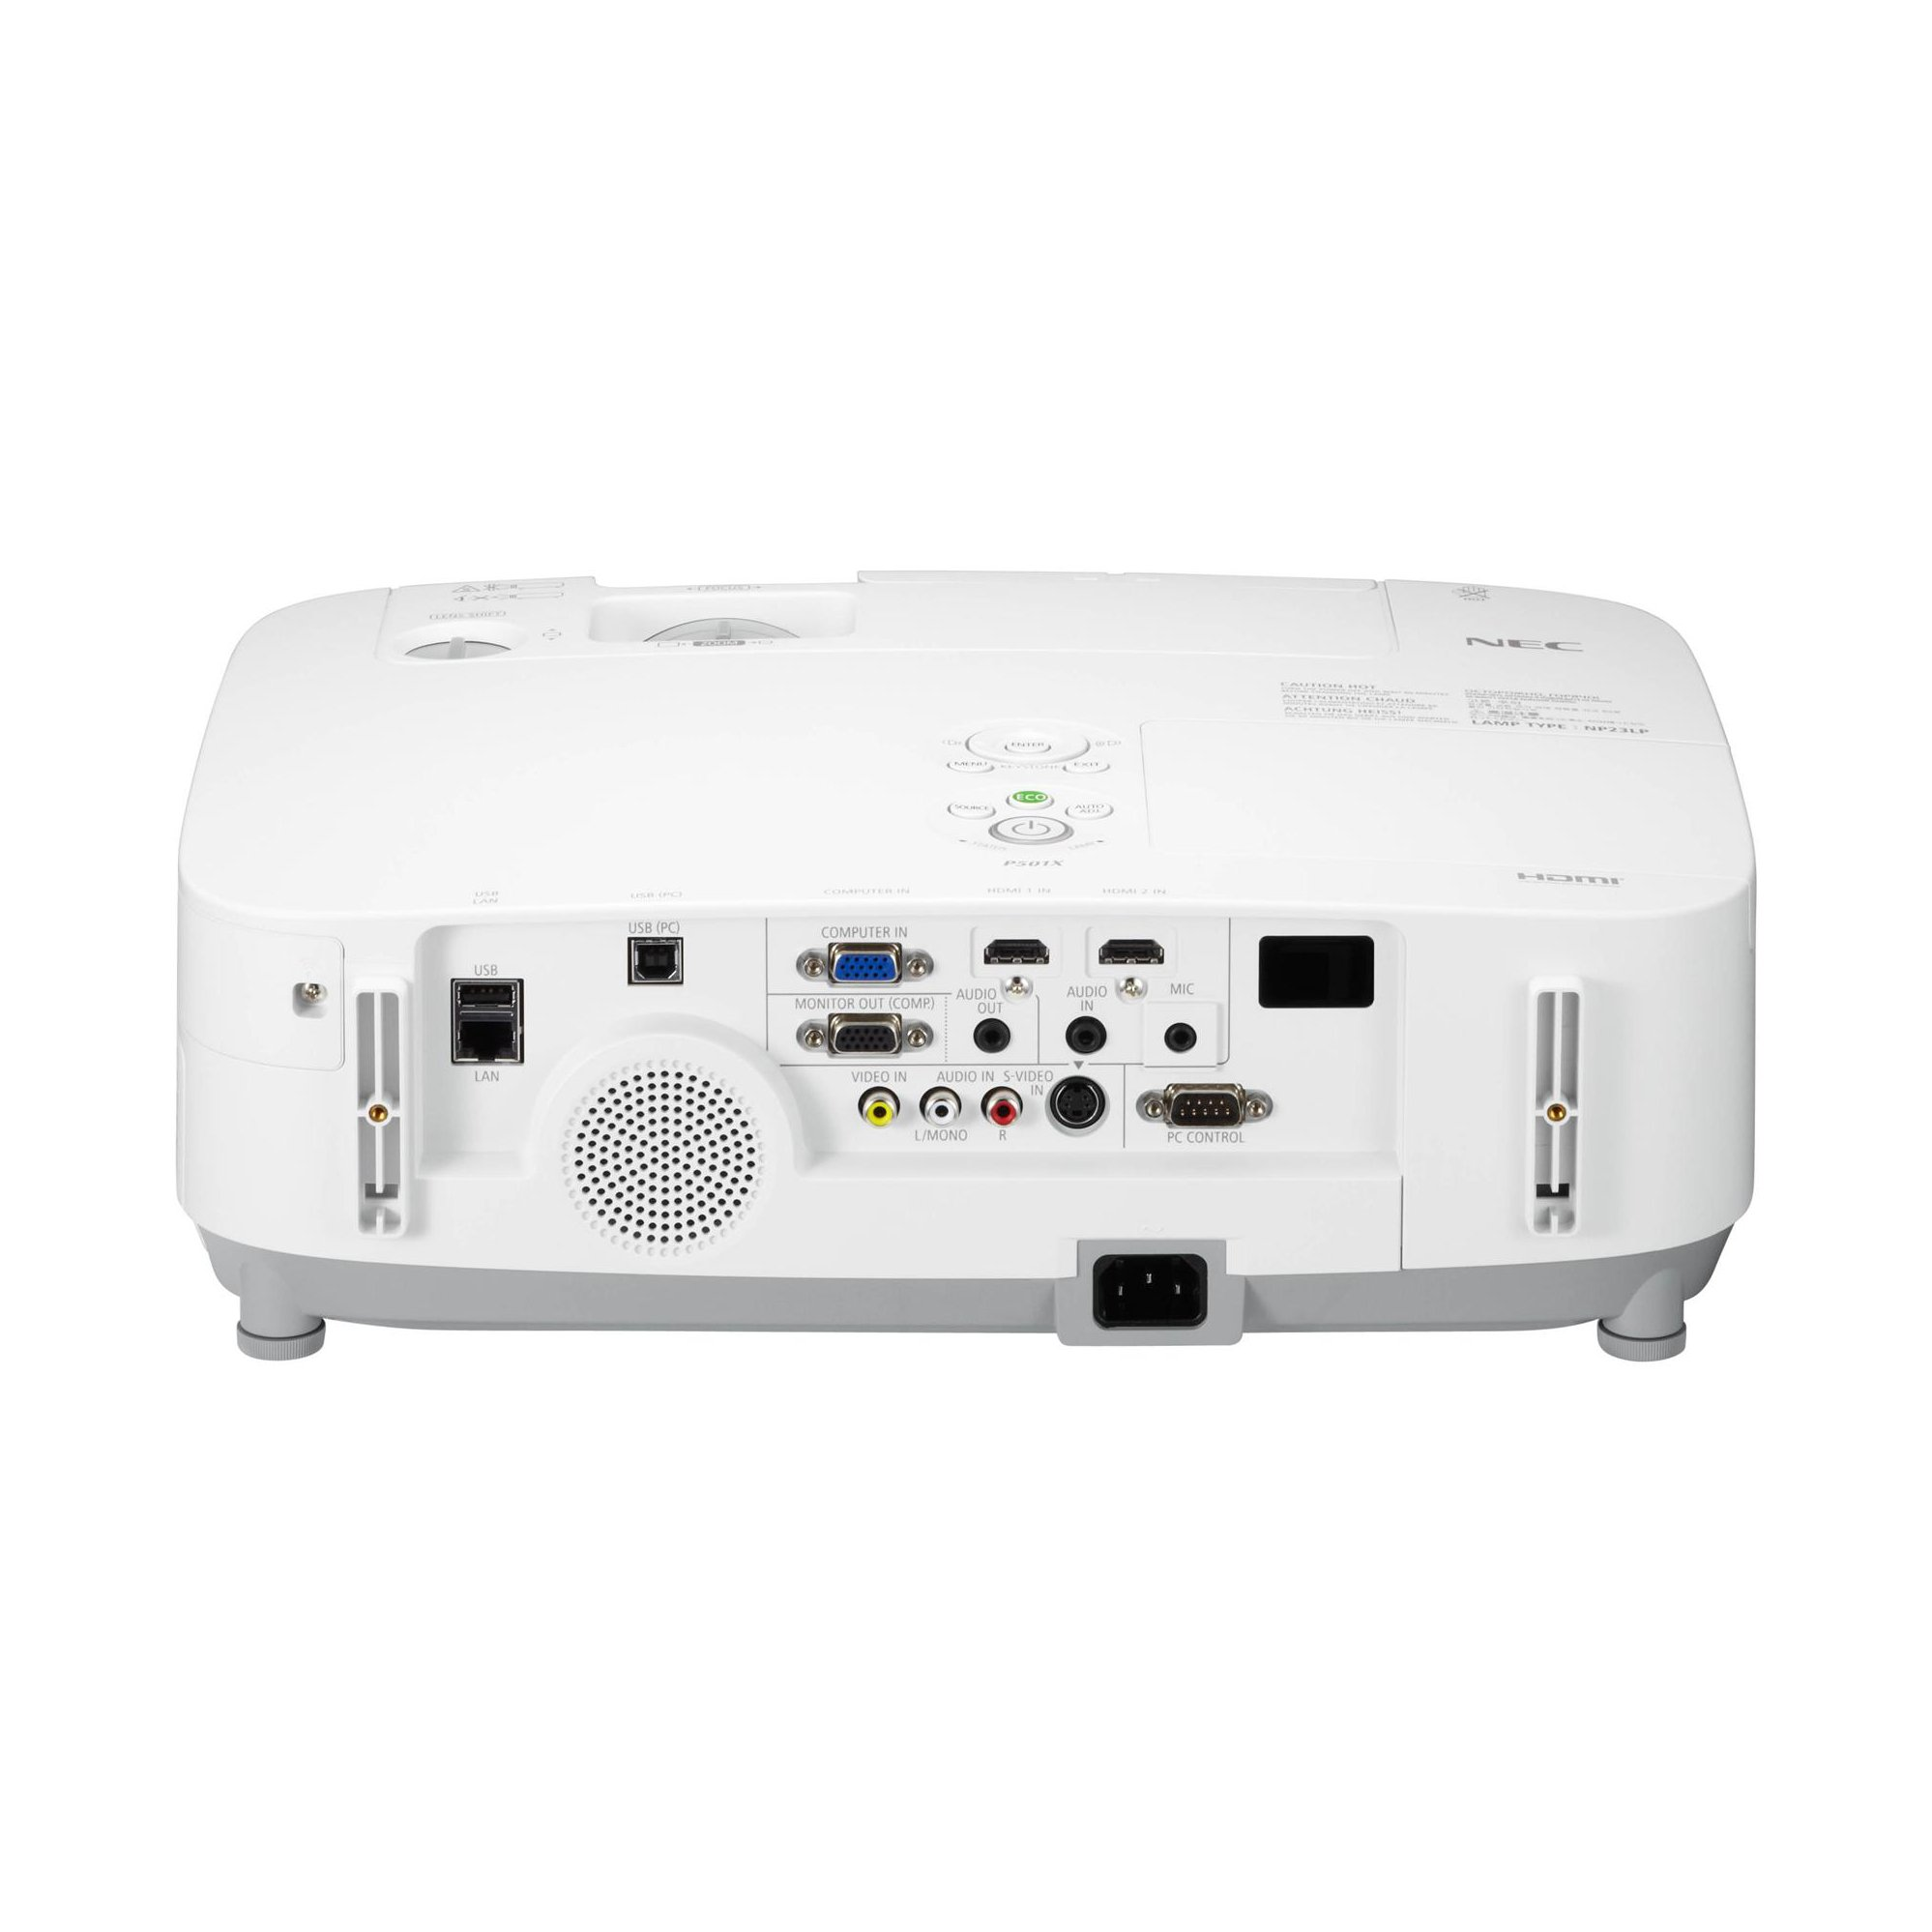 5000 Lumen Entry-Level Professional Installation Projector